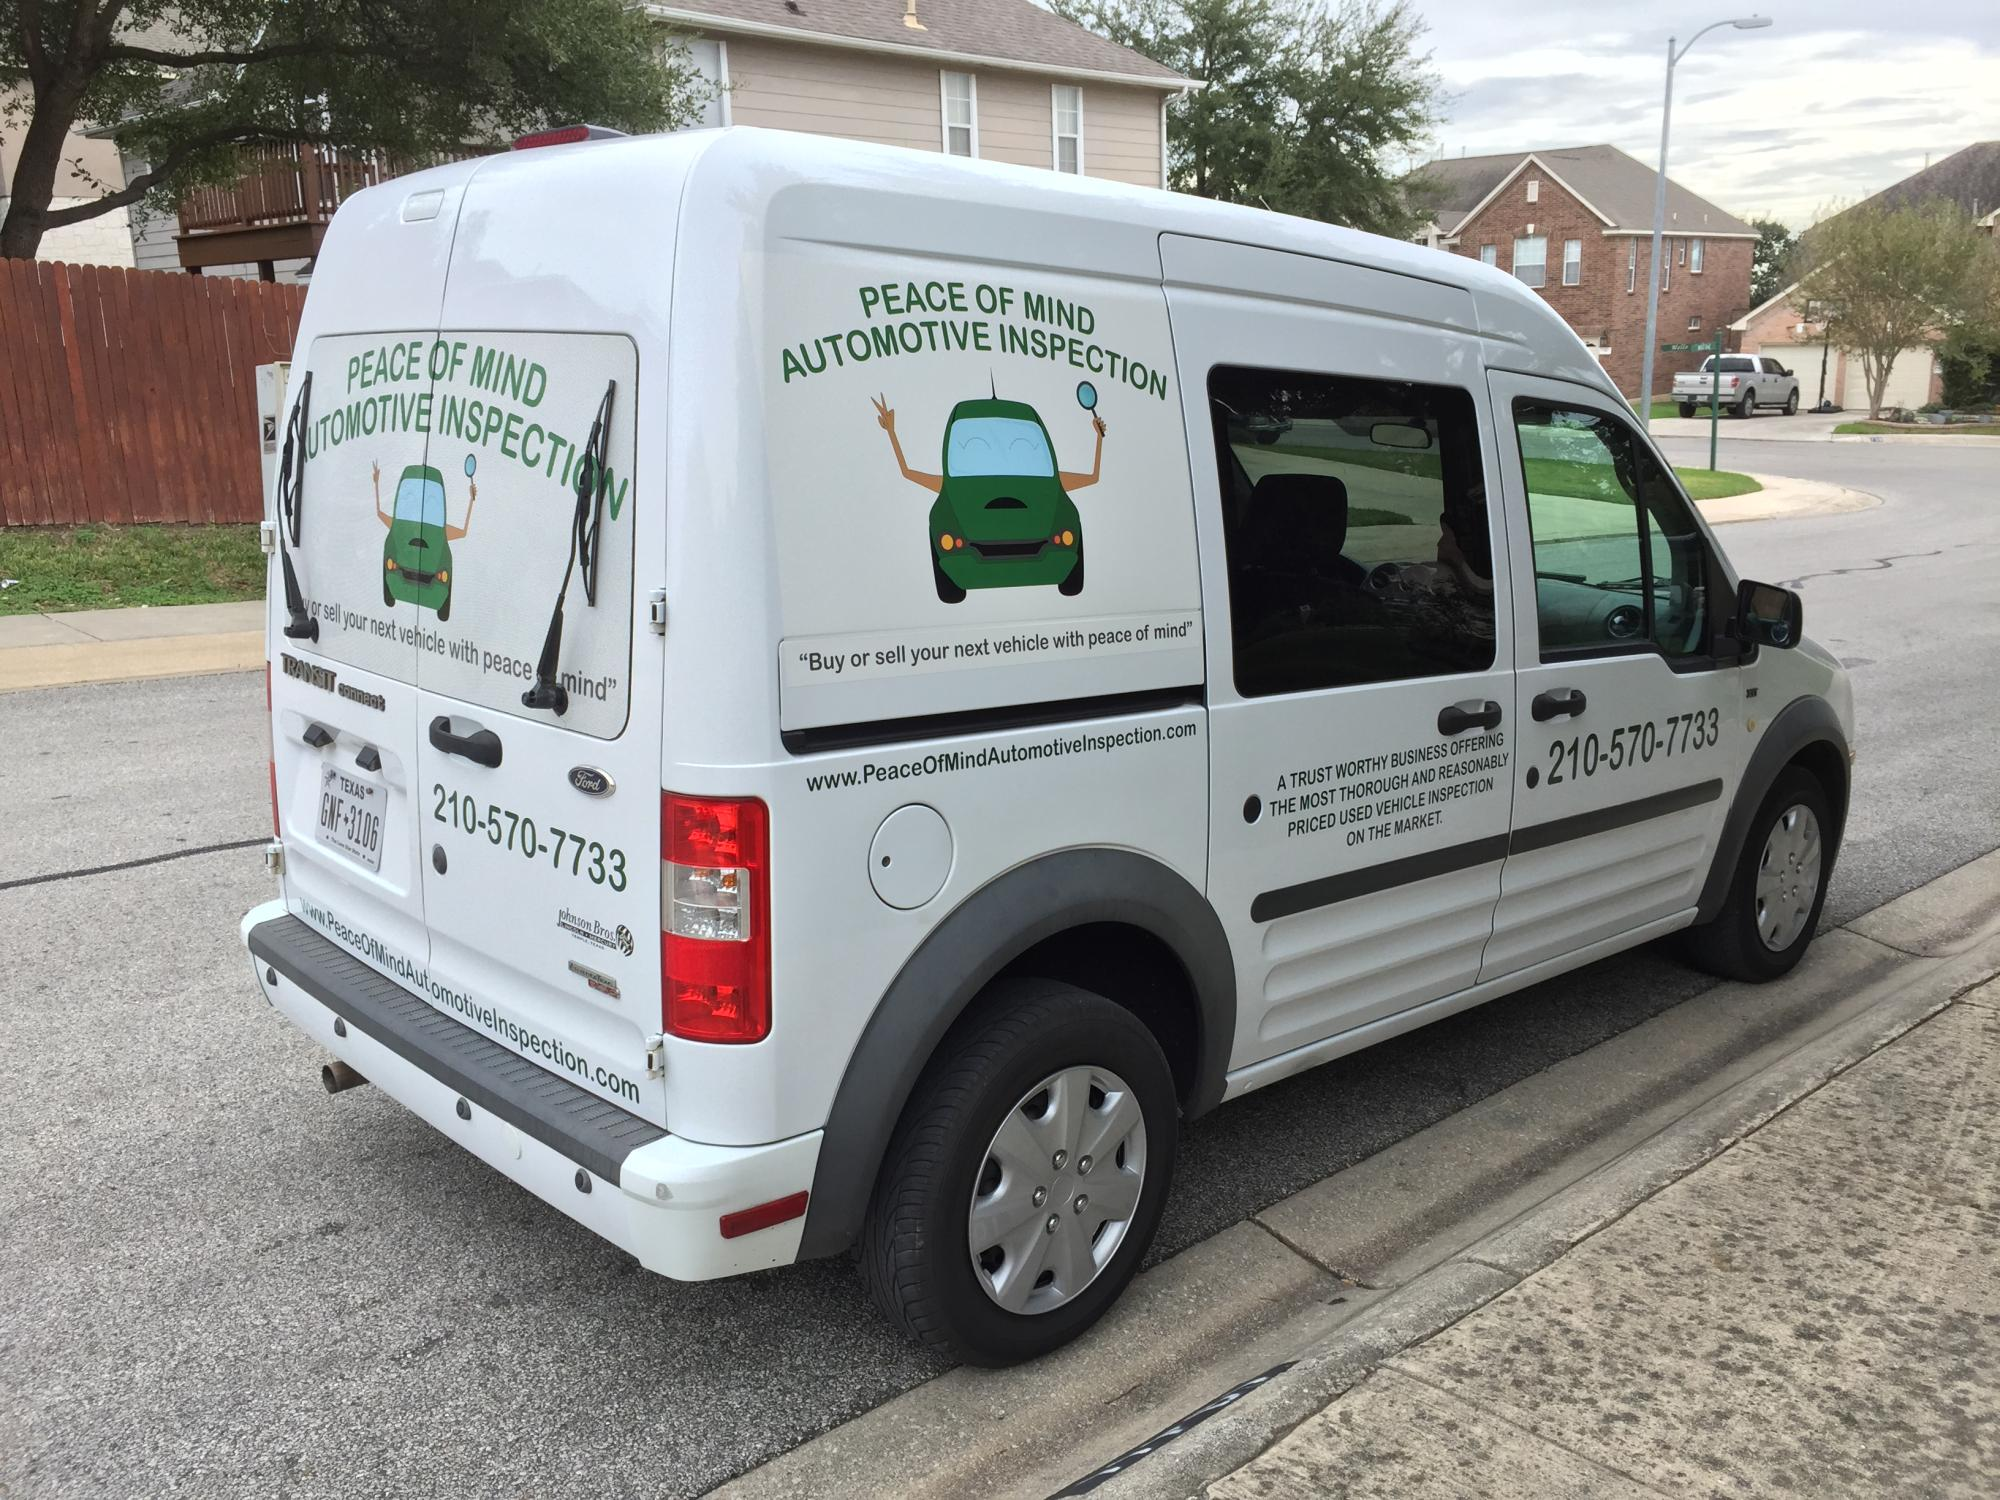 Our Extensive inspection covers all categories- electrical, mechanical, cosmetic and structural. Our services are available to San Antonio, Austin, ...